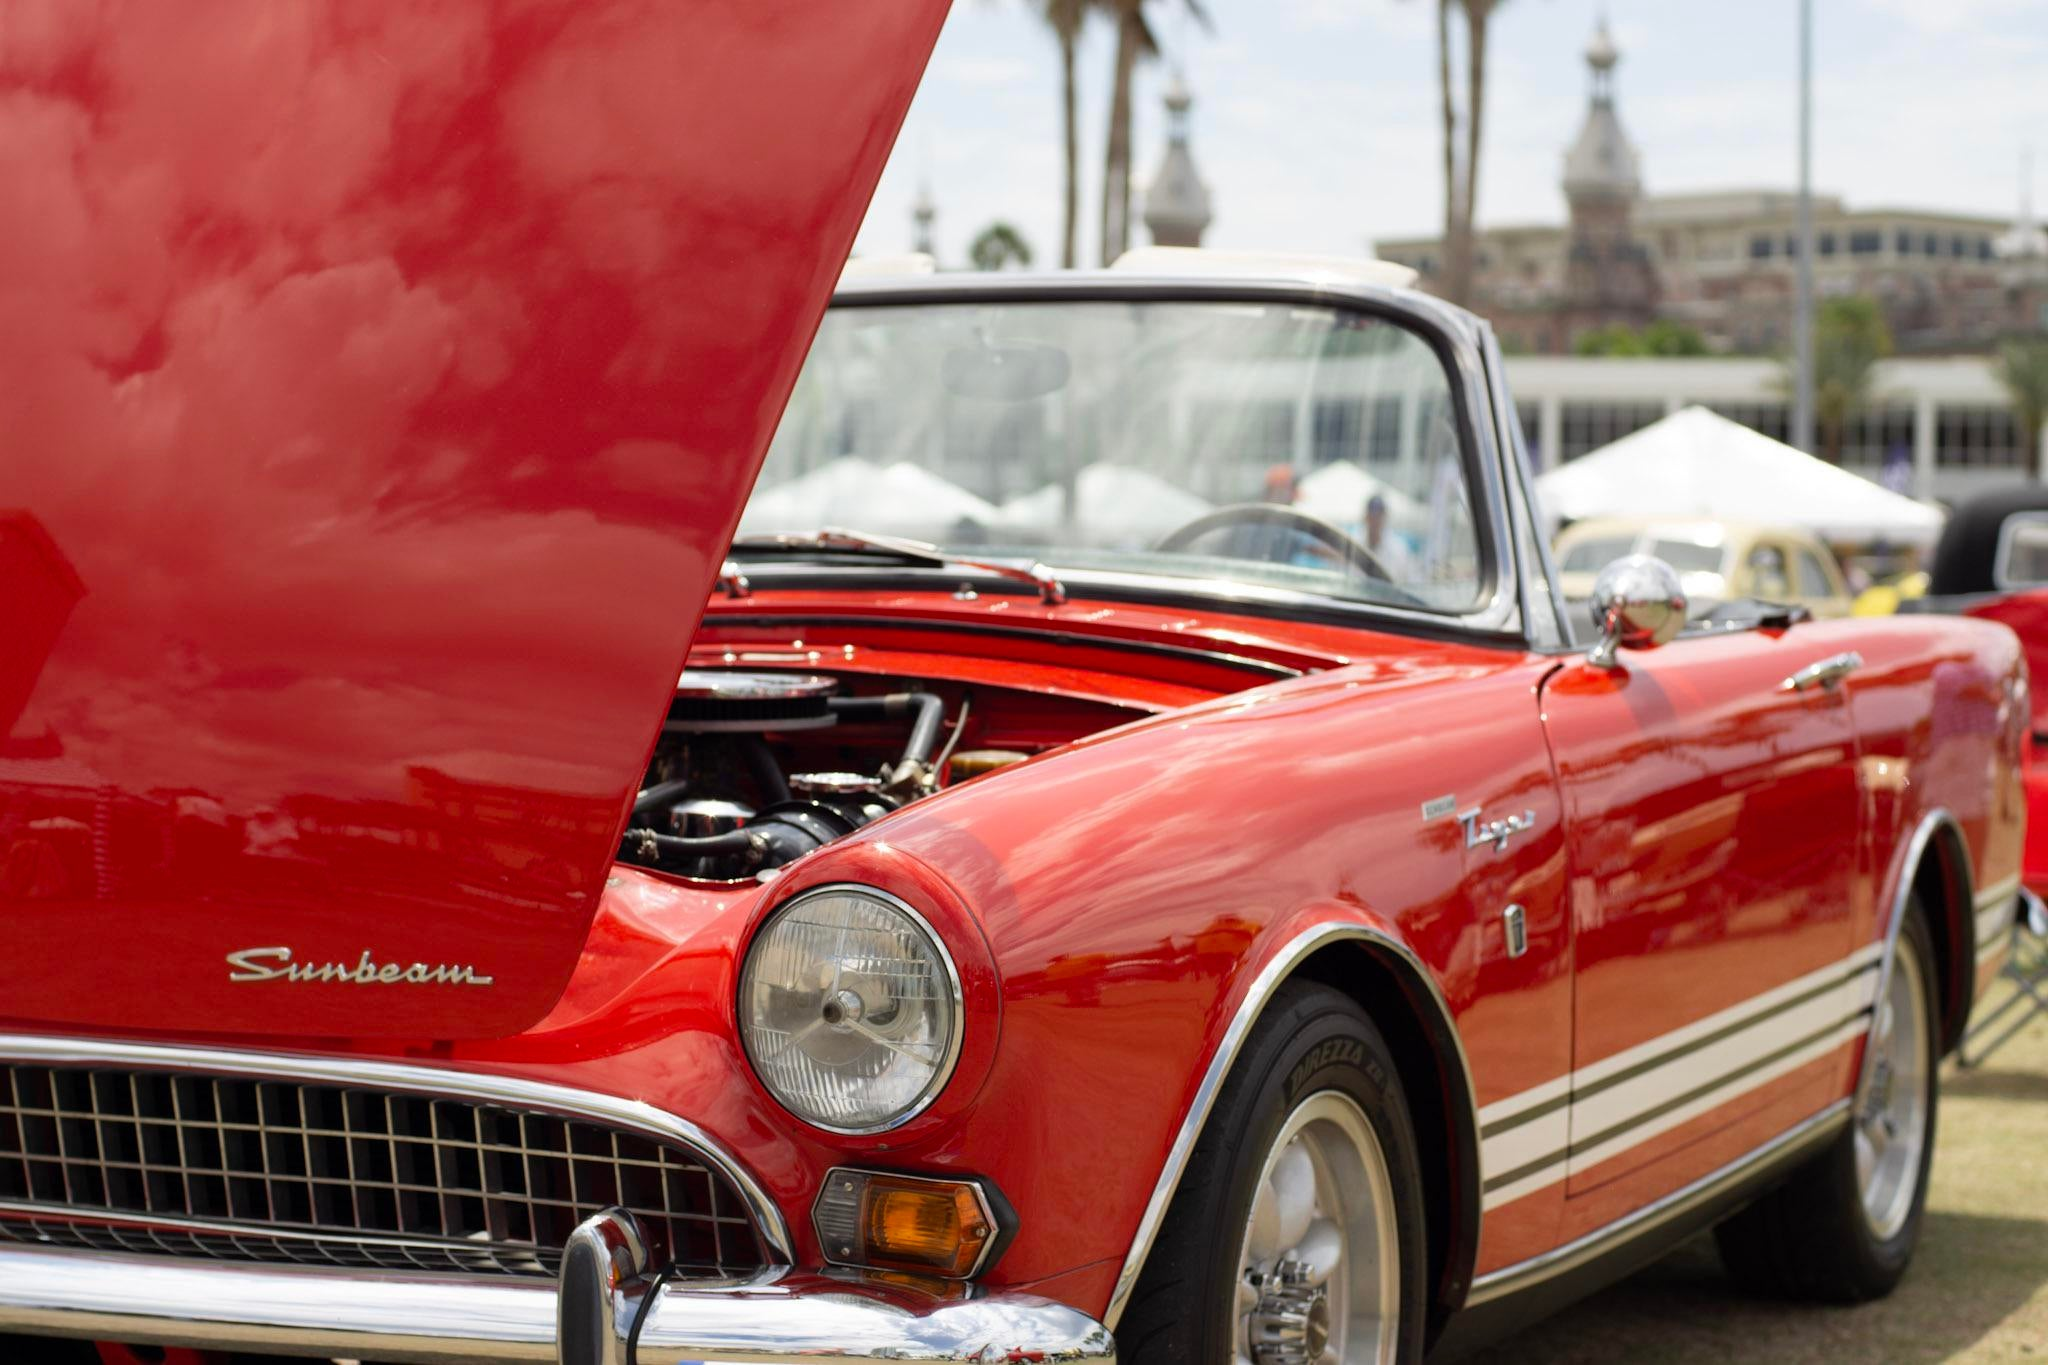 Sunbeam Tiger, Developed by Carroll Shelby and Ken Miles